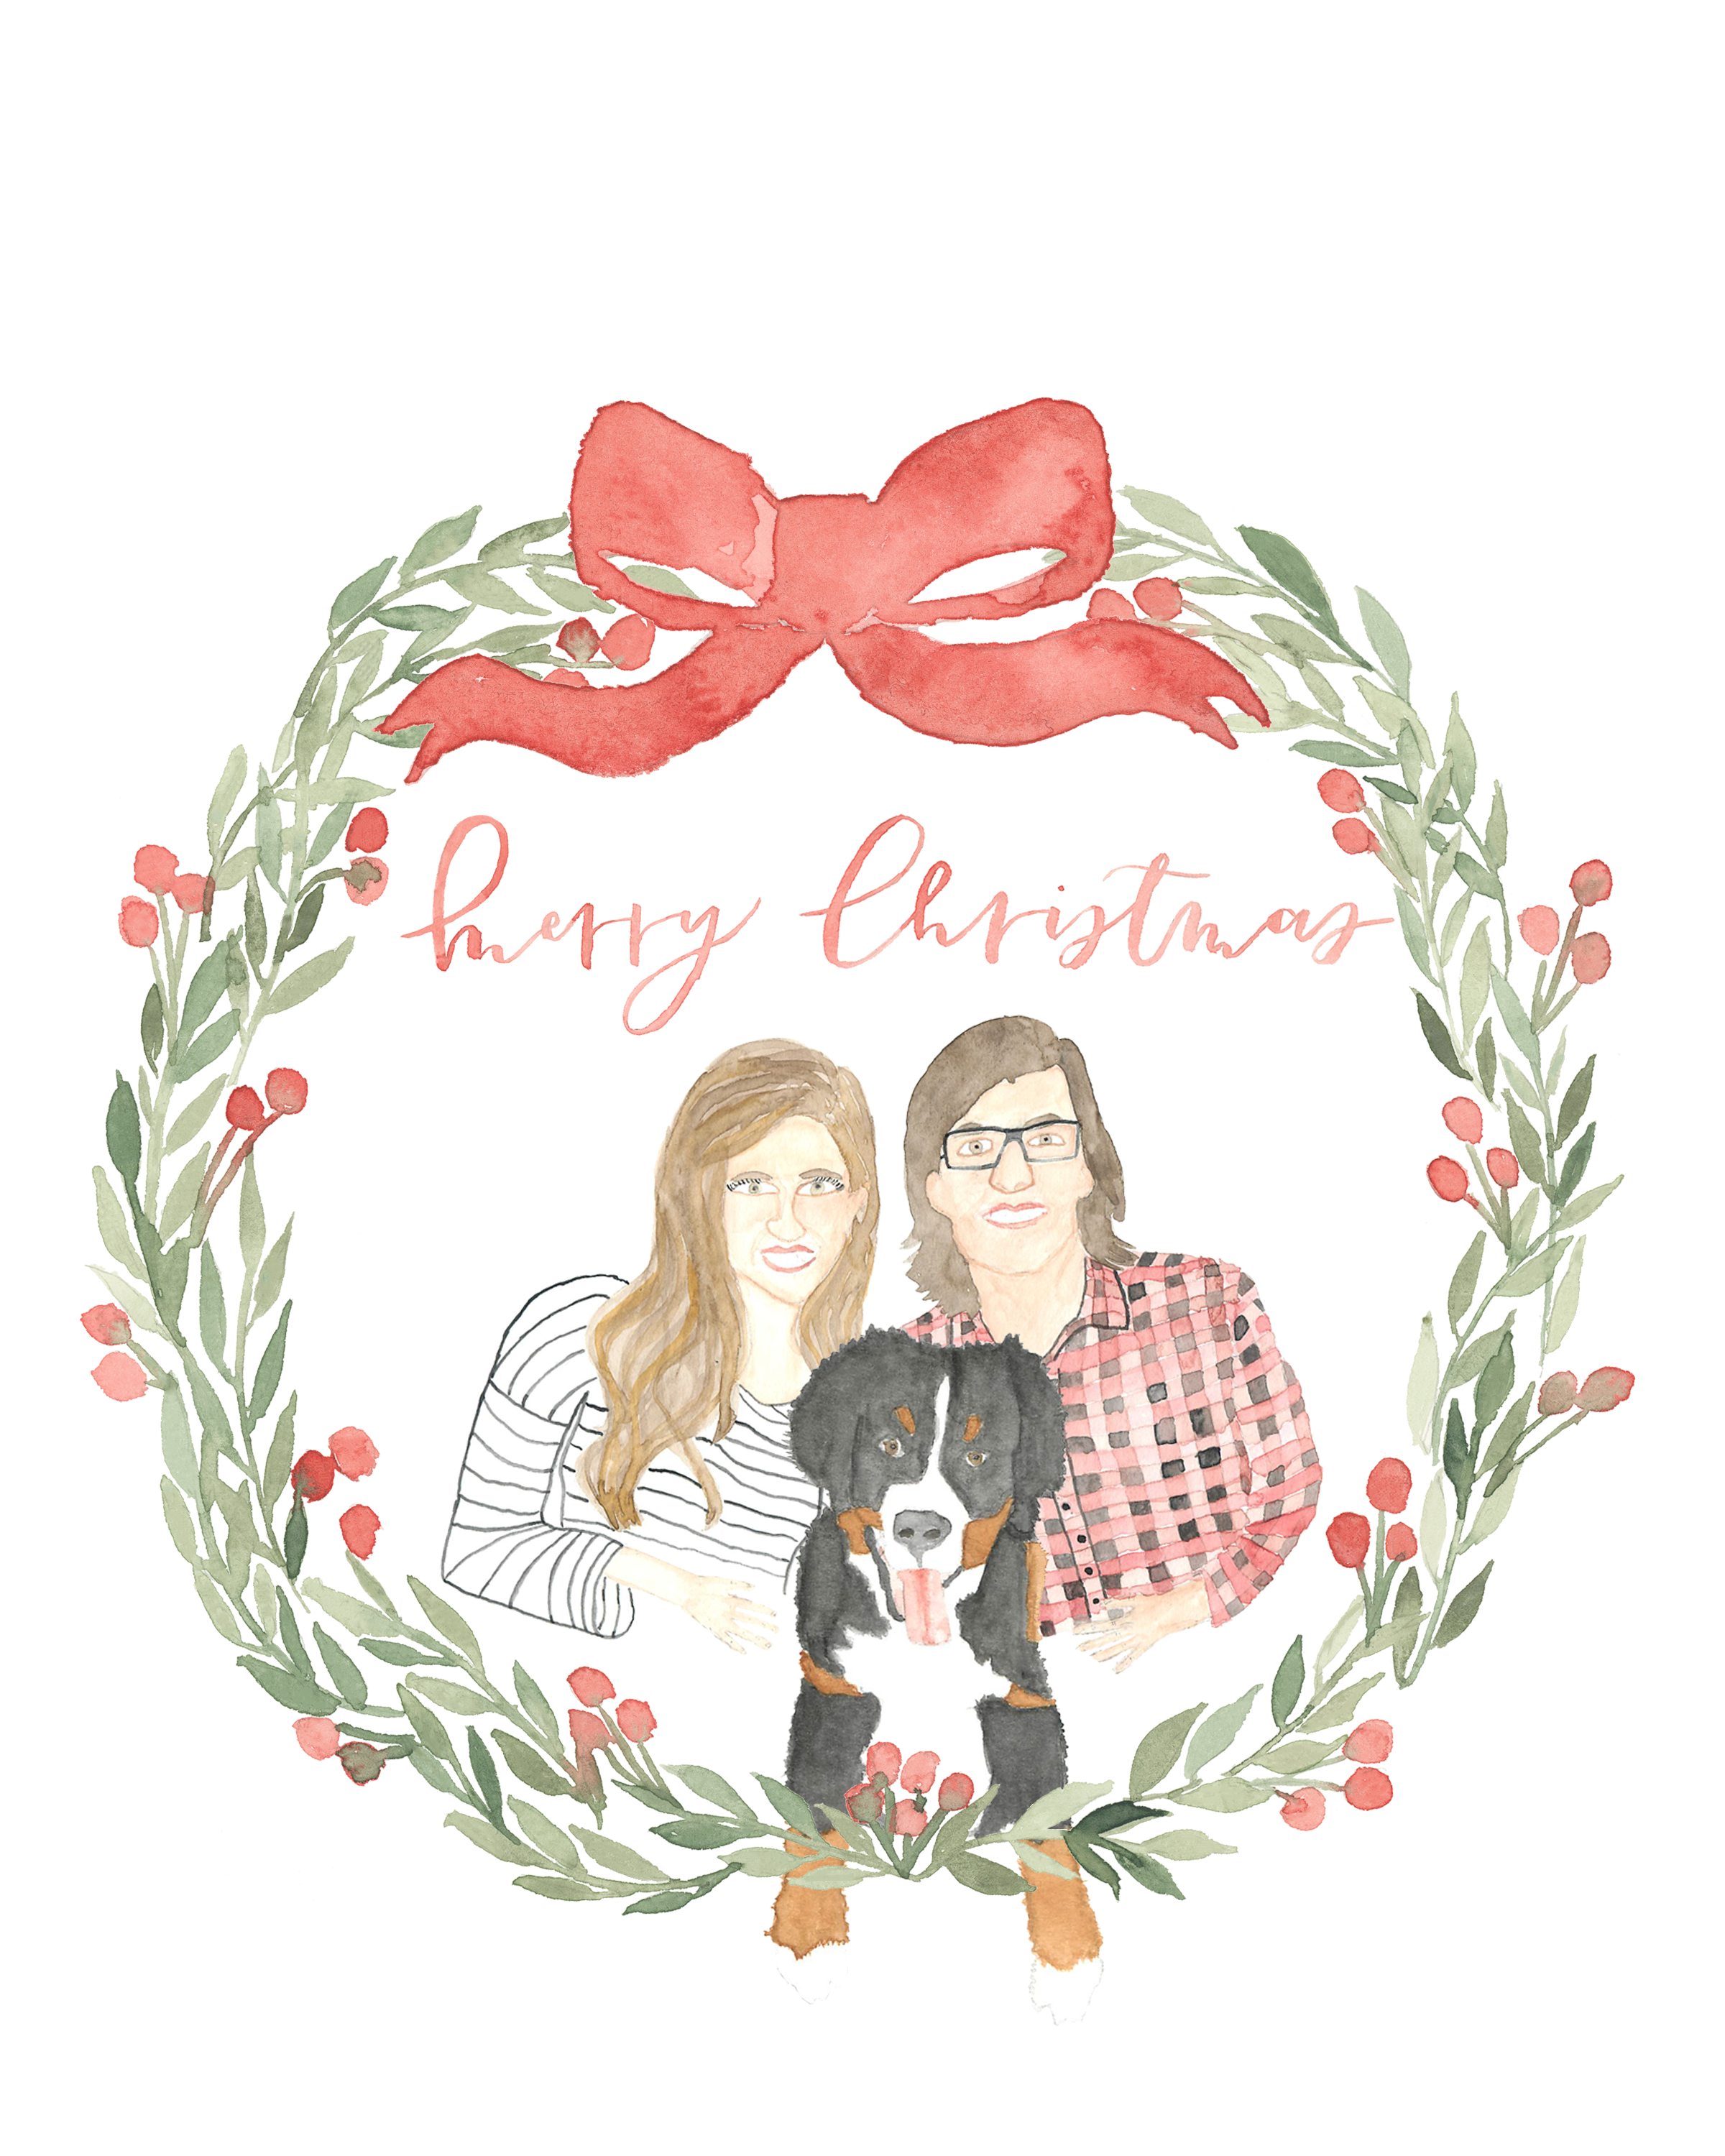 ChristmasCardSample3.png